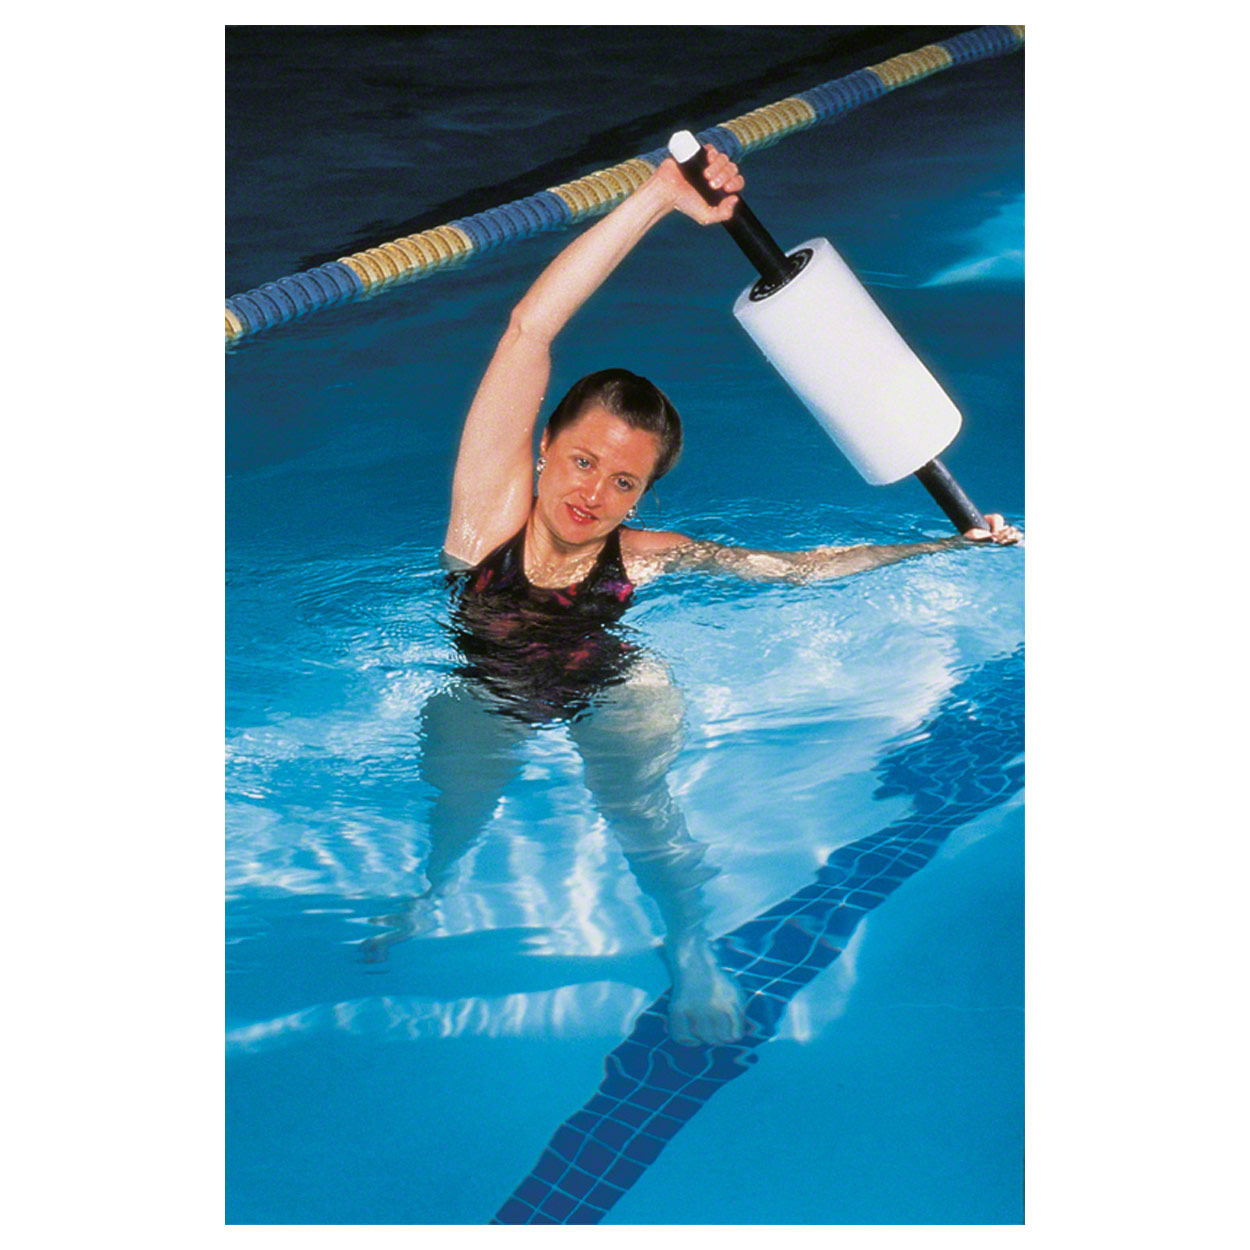 Gymnastik & Fitness: Thera-Band Aqua Balken, Ø 15 cm x 80 cm